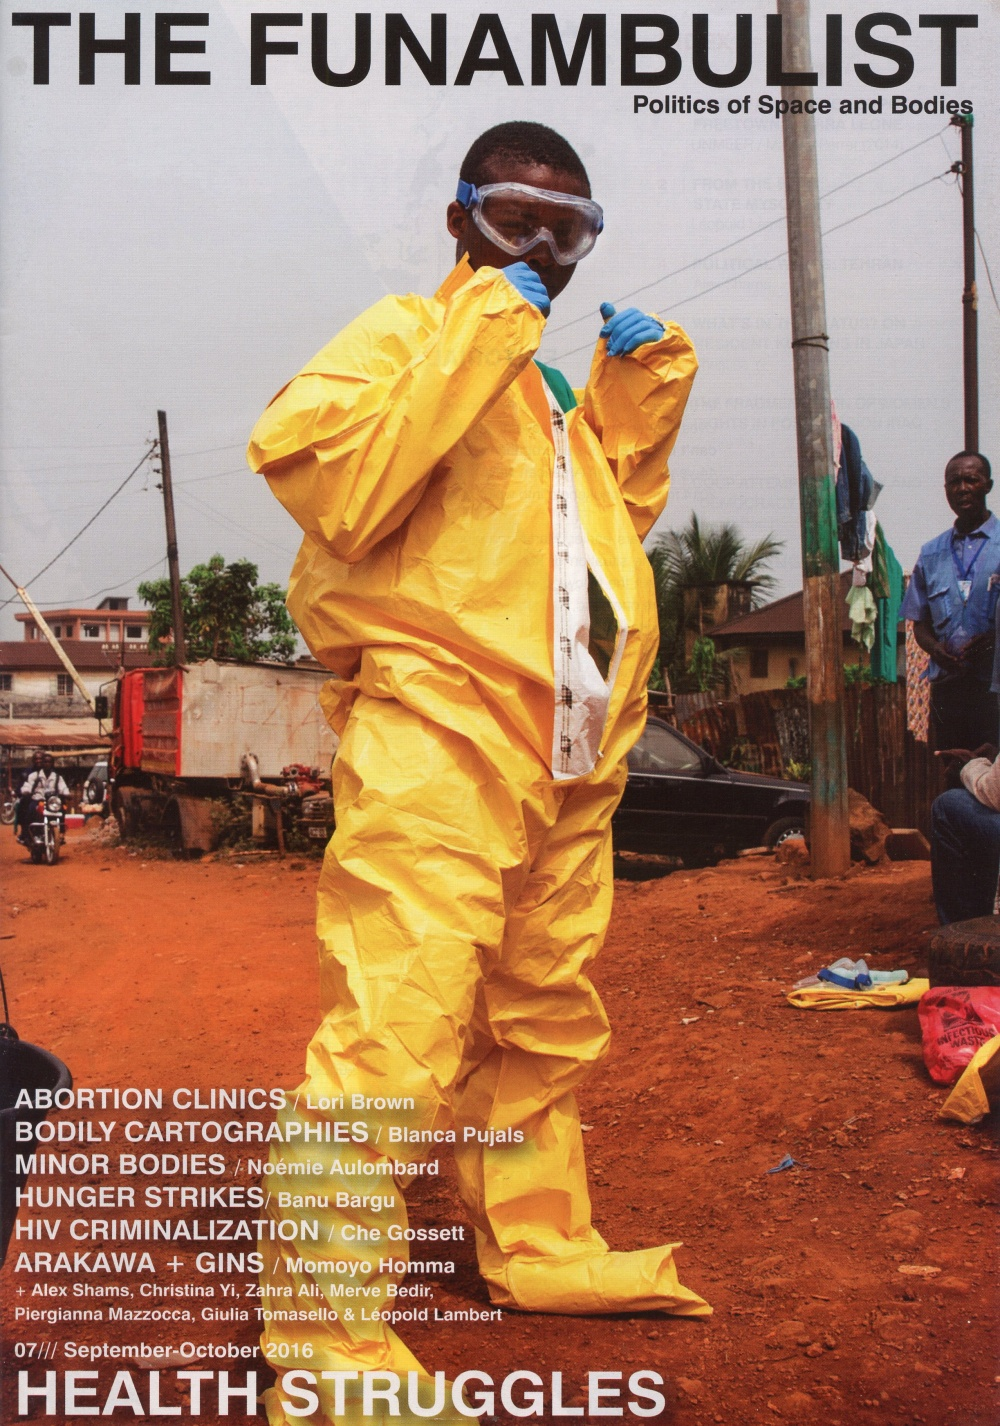 THE FUNAMBULIST 07/// Sept-Oct 2016: HEALTH STRUGGLES